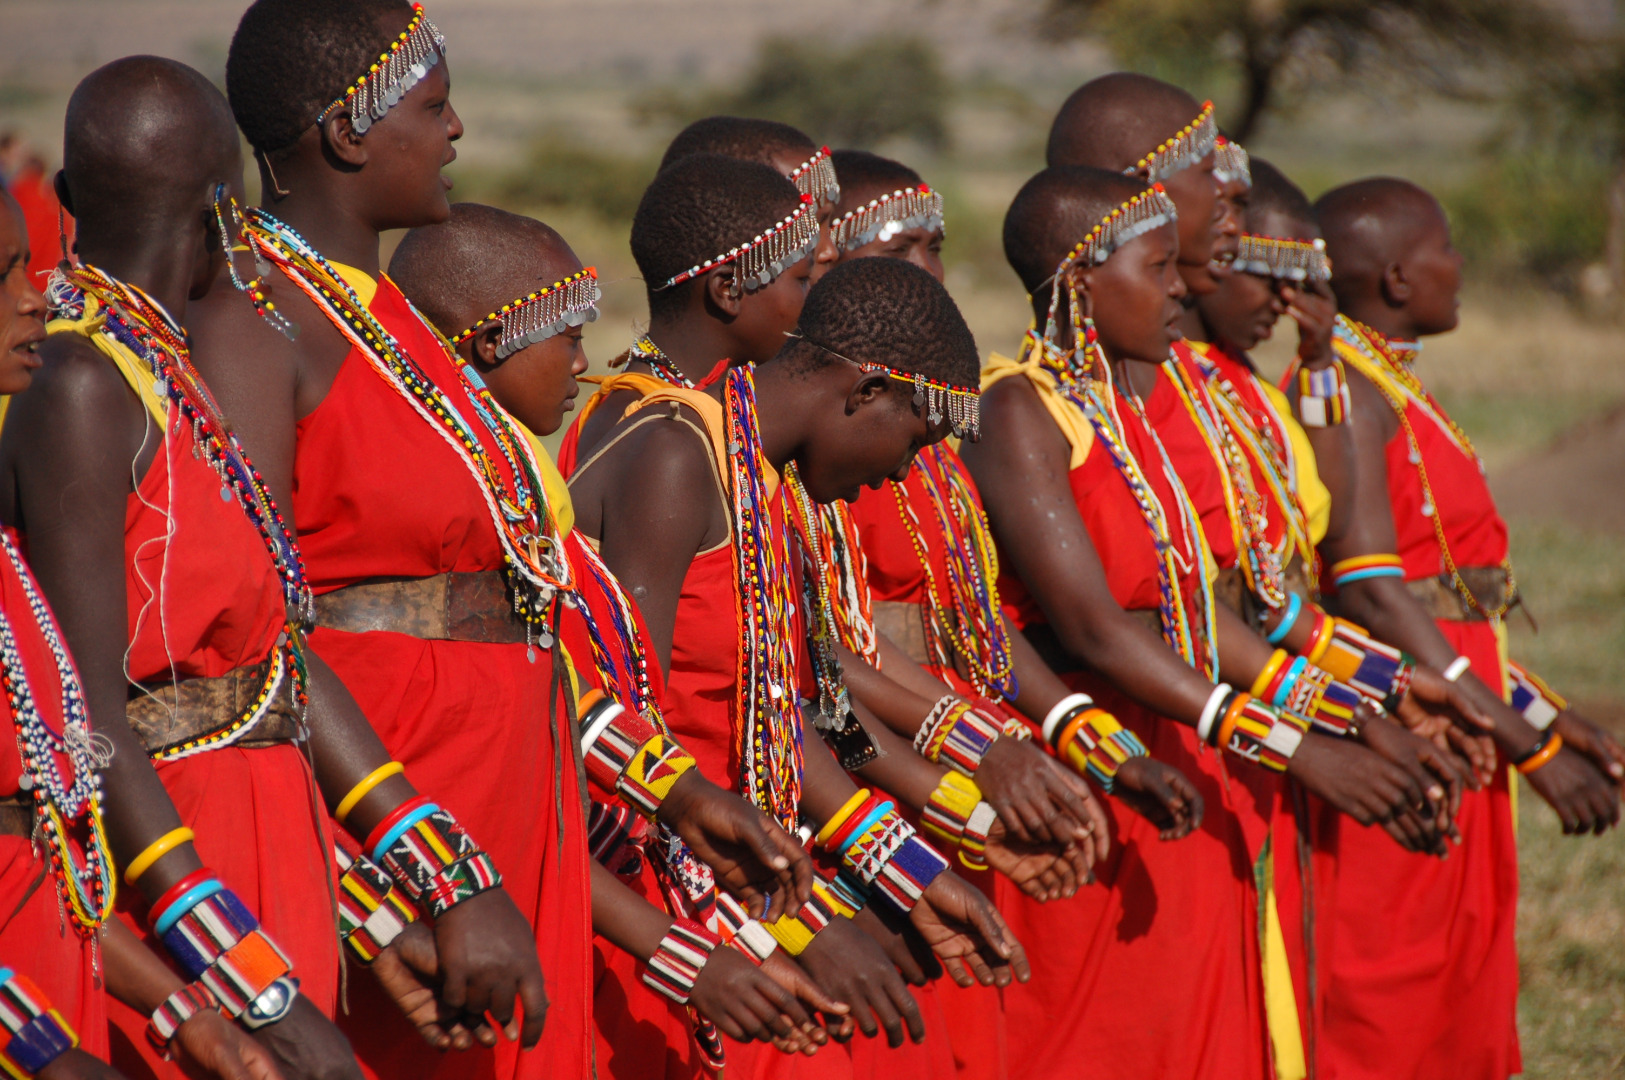 the massai culture In addition, maasai culture has been radically altered as a result both of voluntary acculturation and deliberate attempts to weaken it today, many maasai have given up traditional pastoralism and have adopted agriculture.